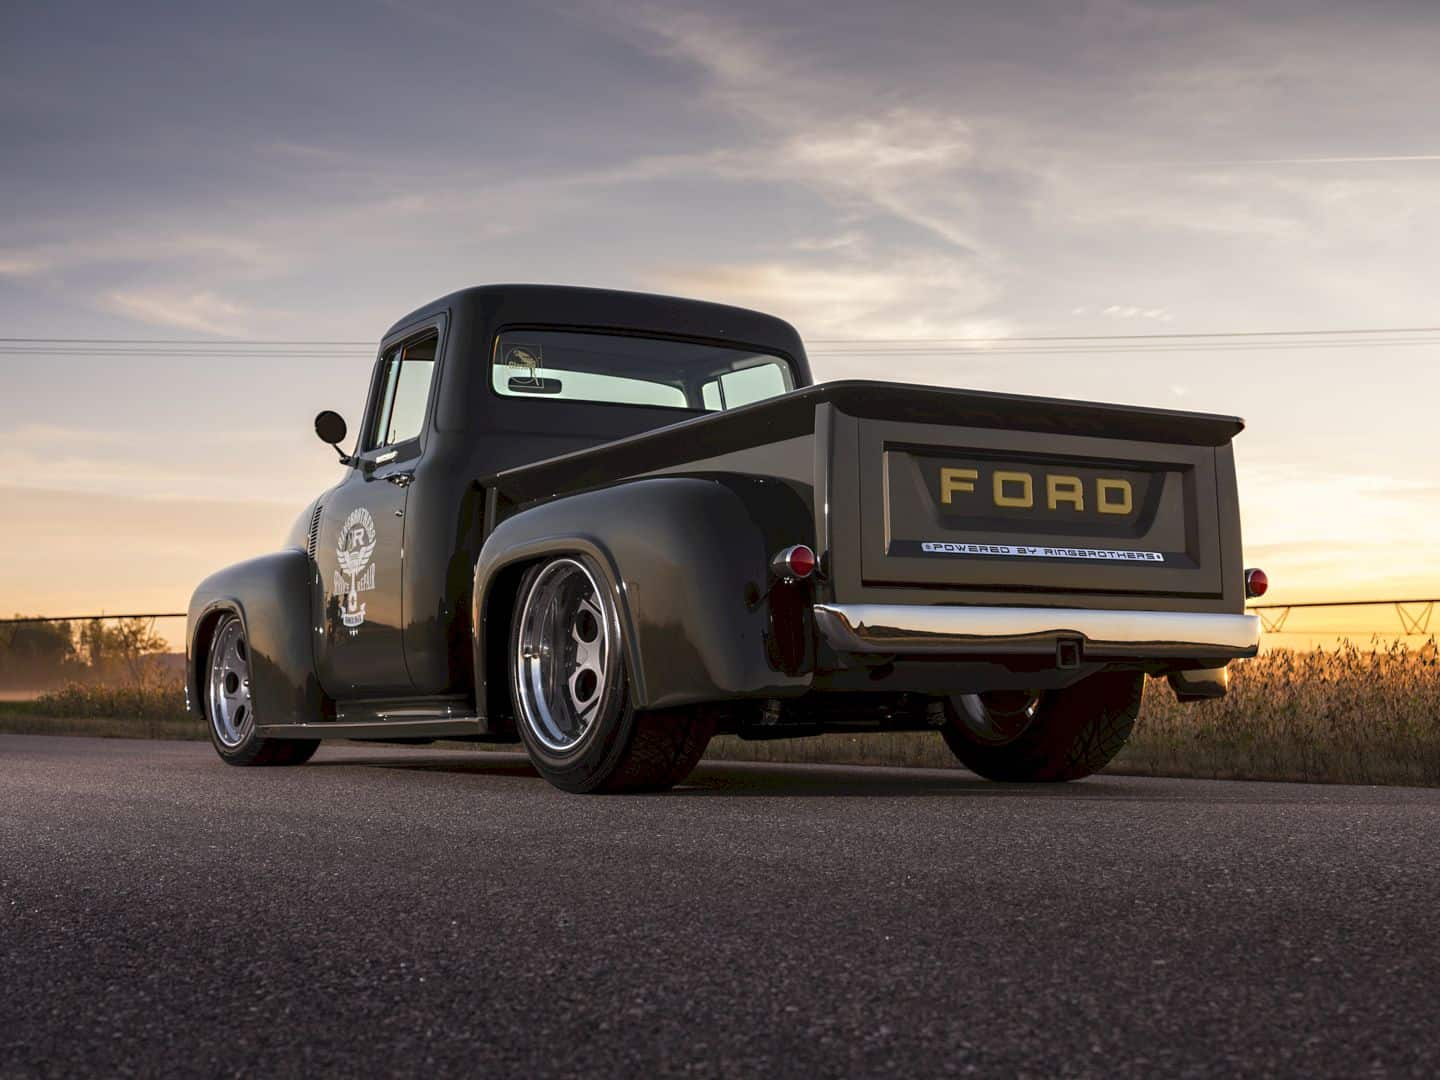 1956 Ford F100 Truck Clem 101 by Ringbrothers: The Epitome of Truck by Ford